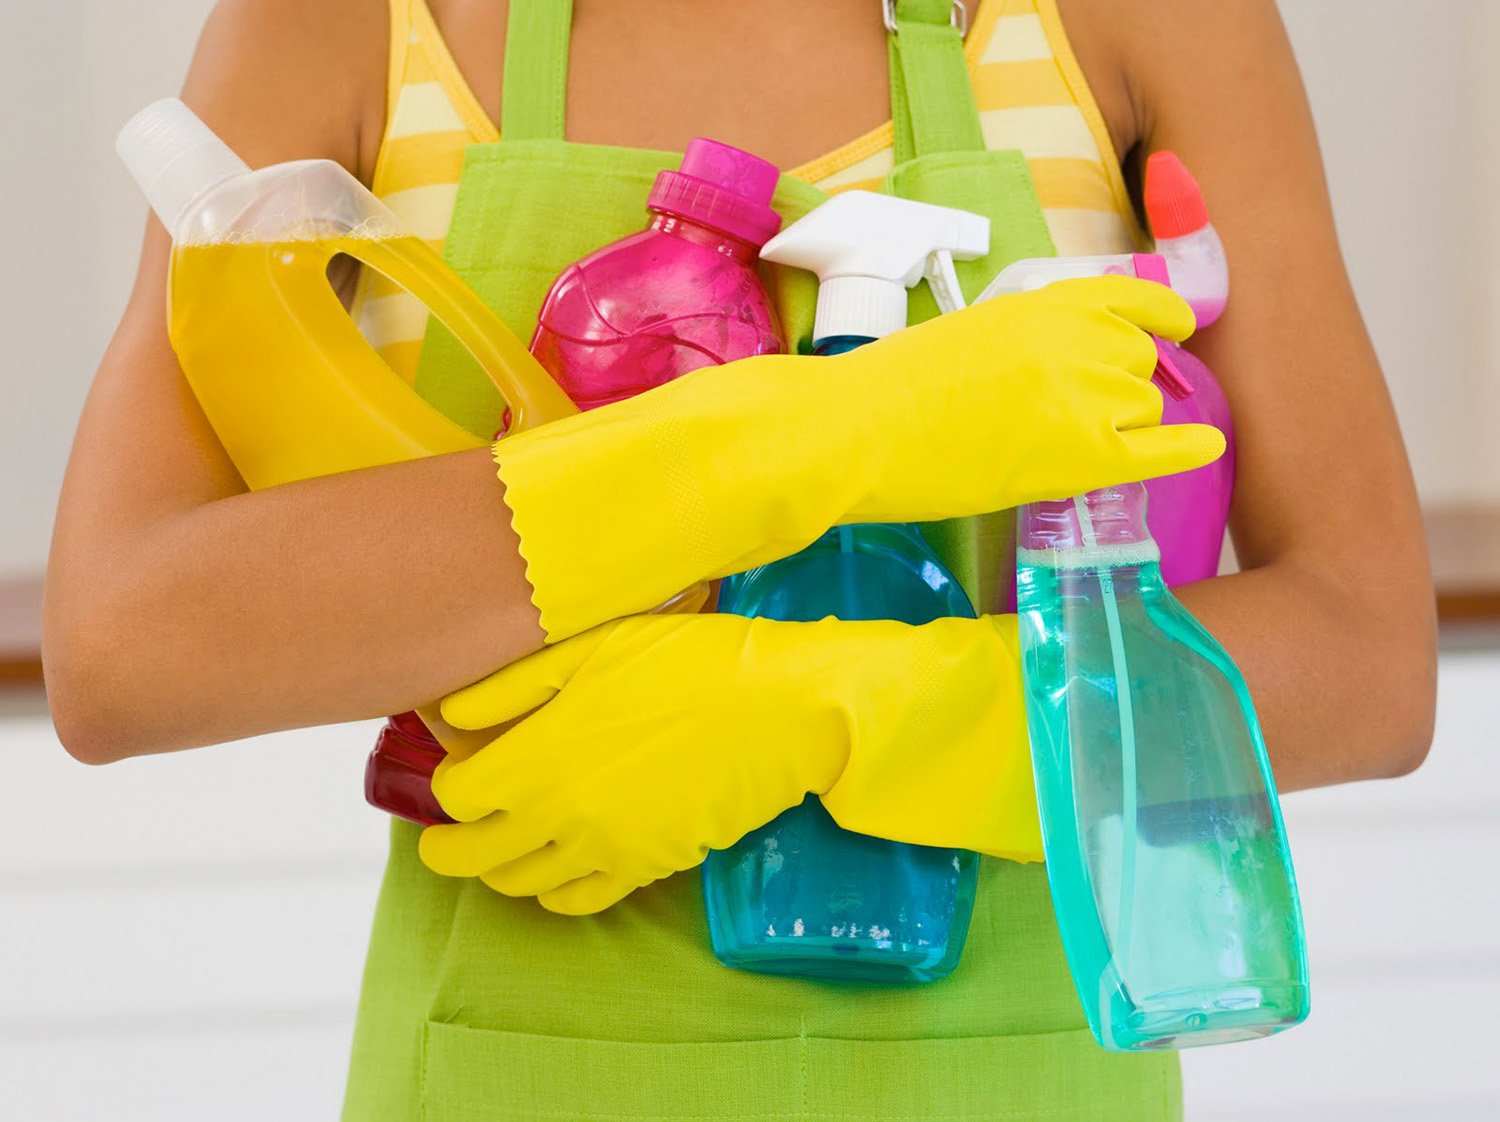 Premier Cleaning - Lake Travis Maid Service